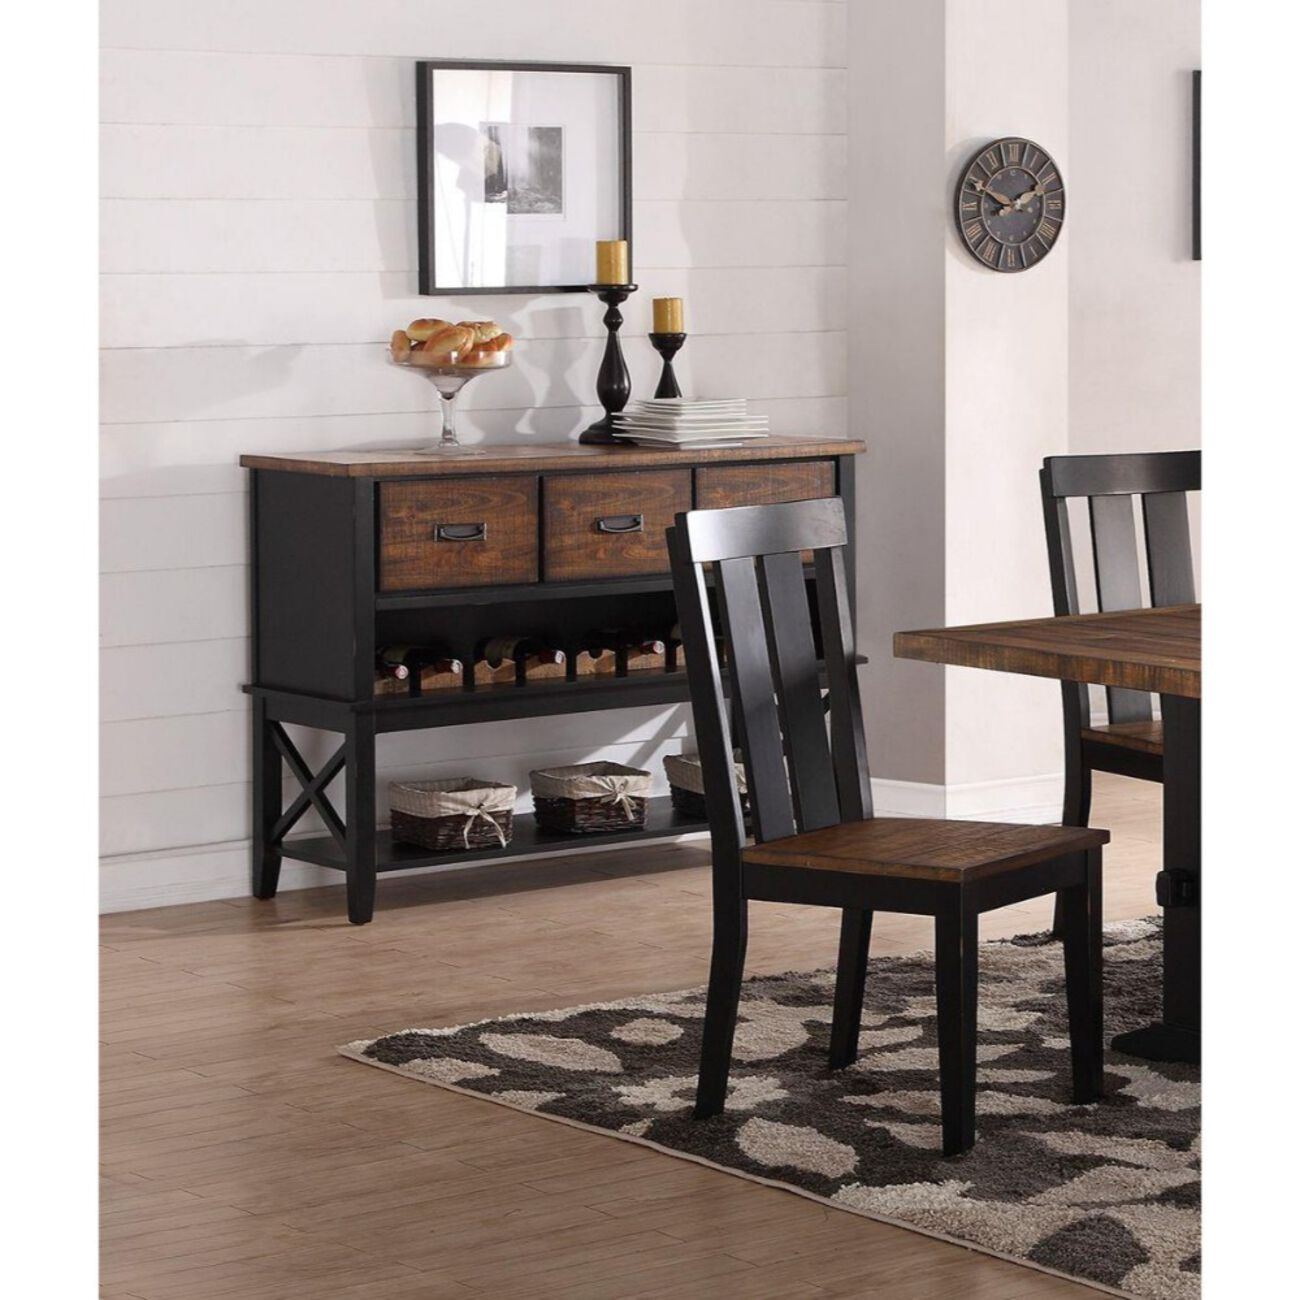 Dual Tone Rubber Wood Server With Spacious Storages Black and Brown